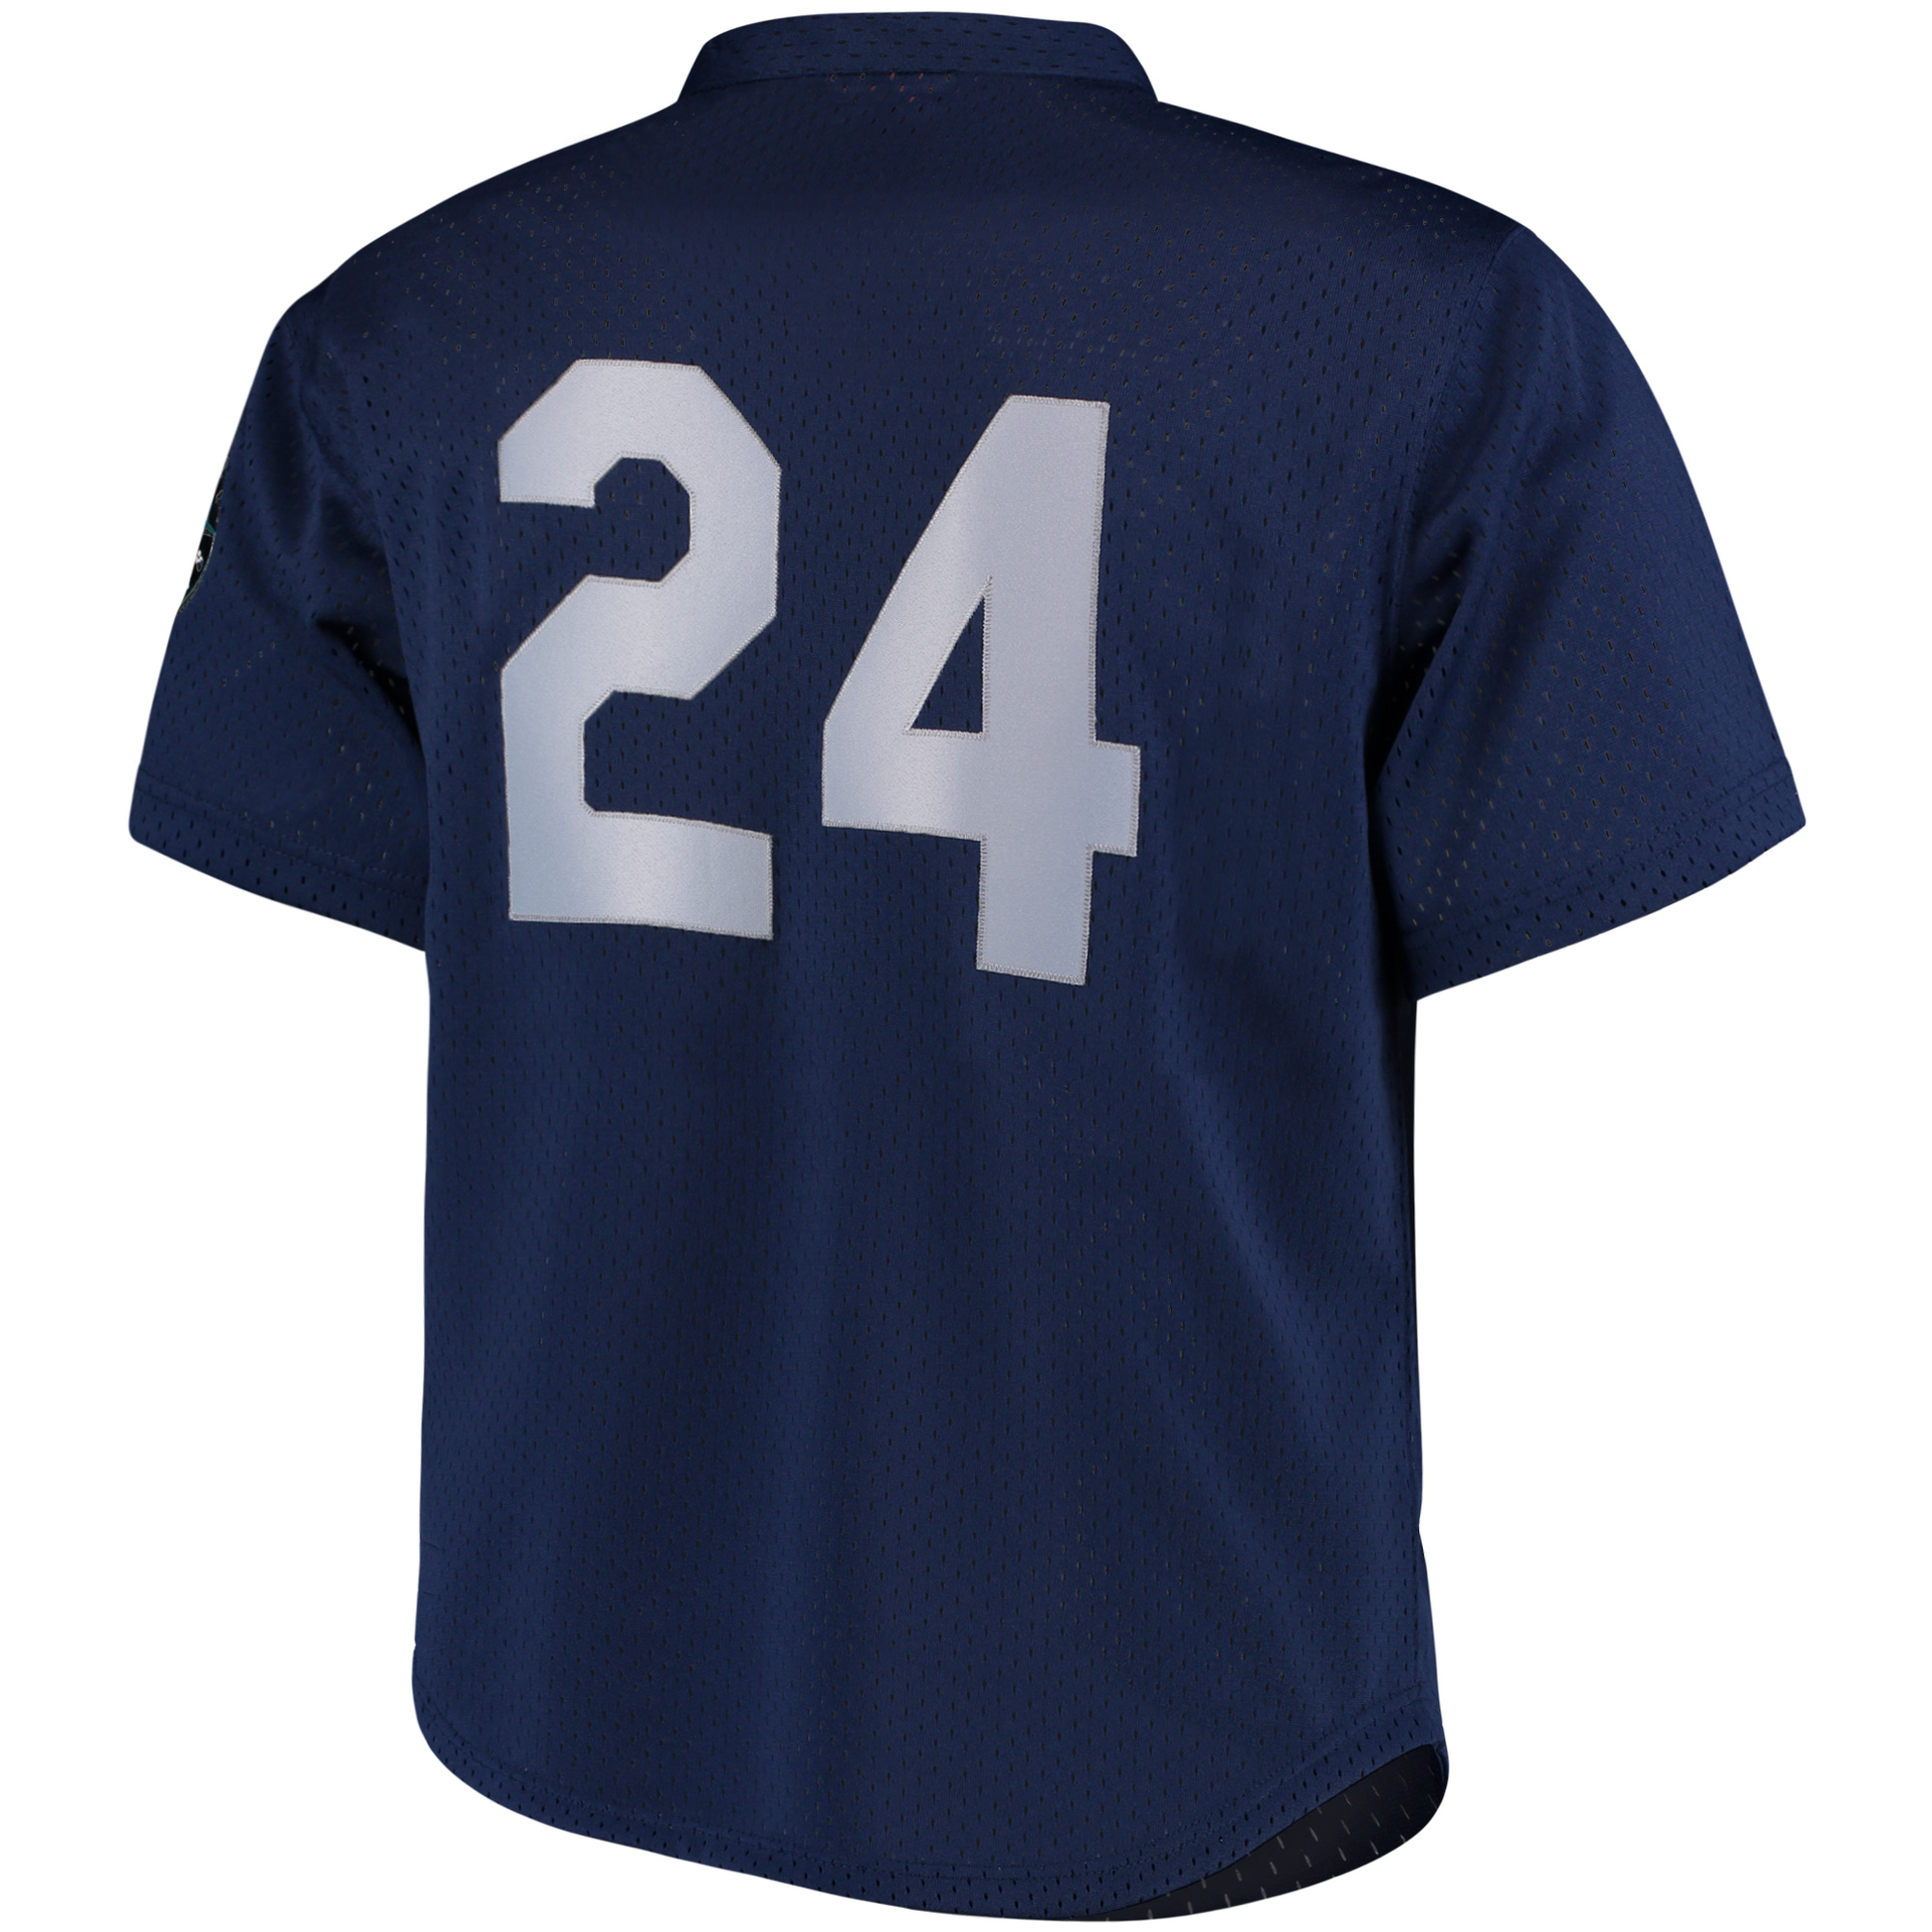 new style e1324 6eacf Ken Griffey Jr. Seattle Mariners Mitchell & Ness Cooperstown Collection  Mesh Batting Practice Jersey - Navy